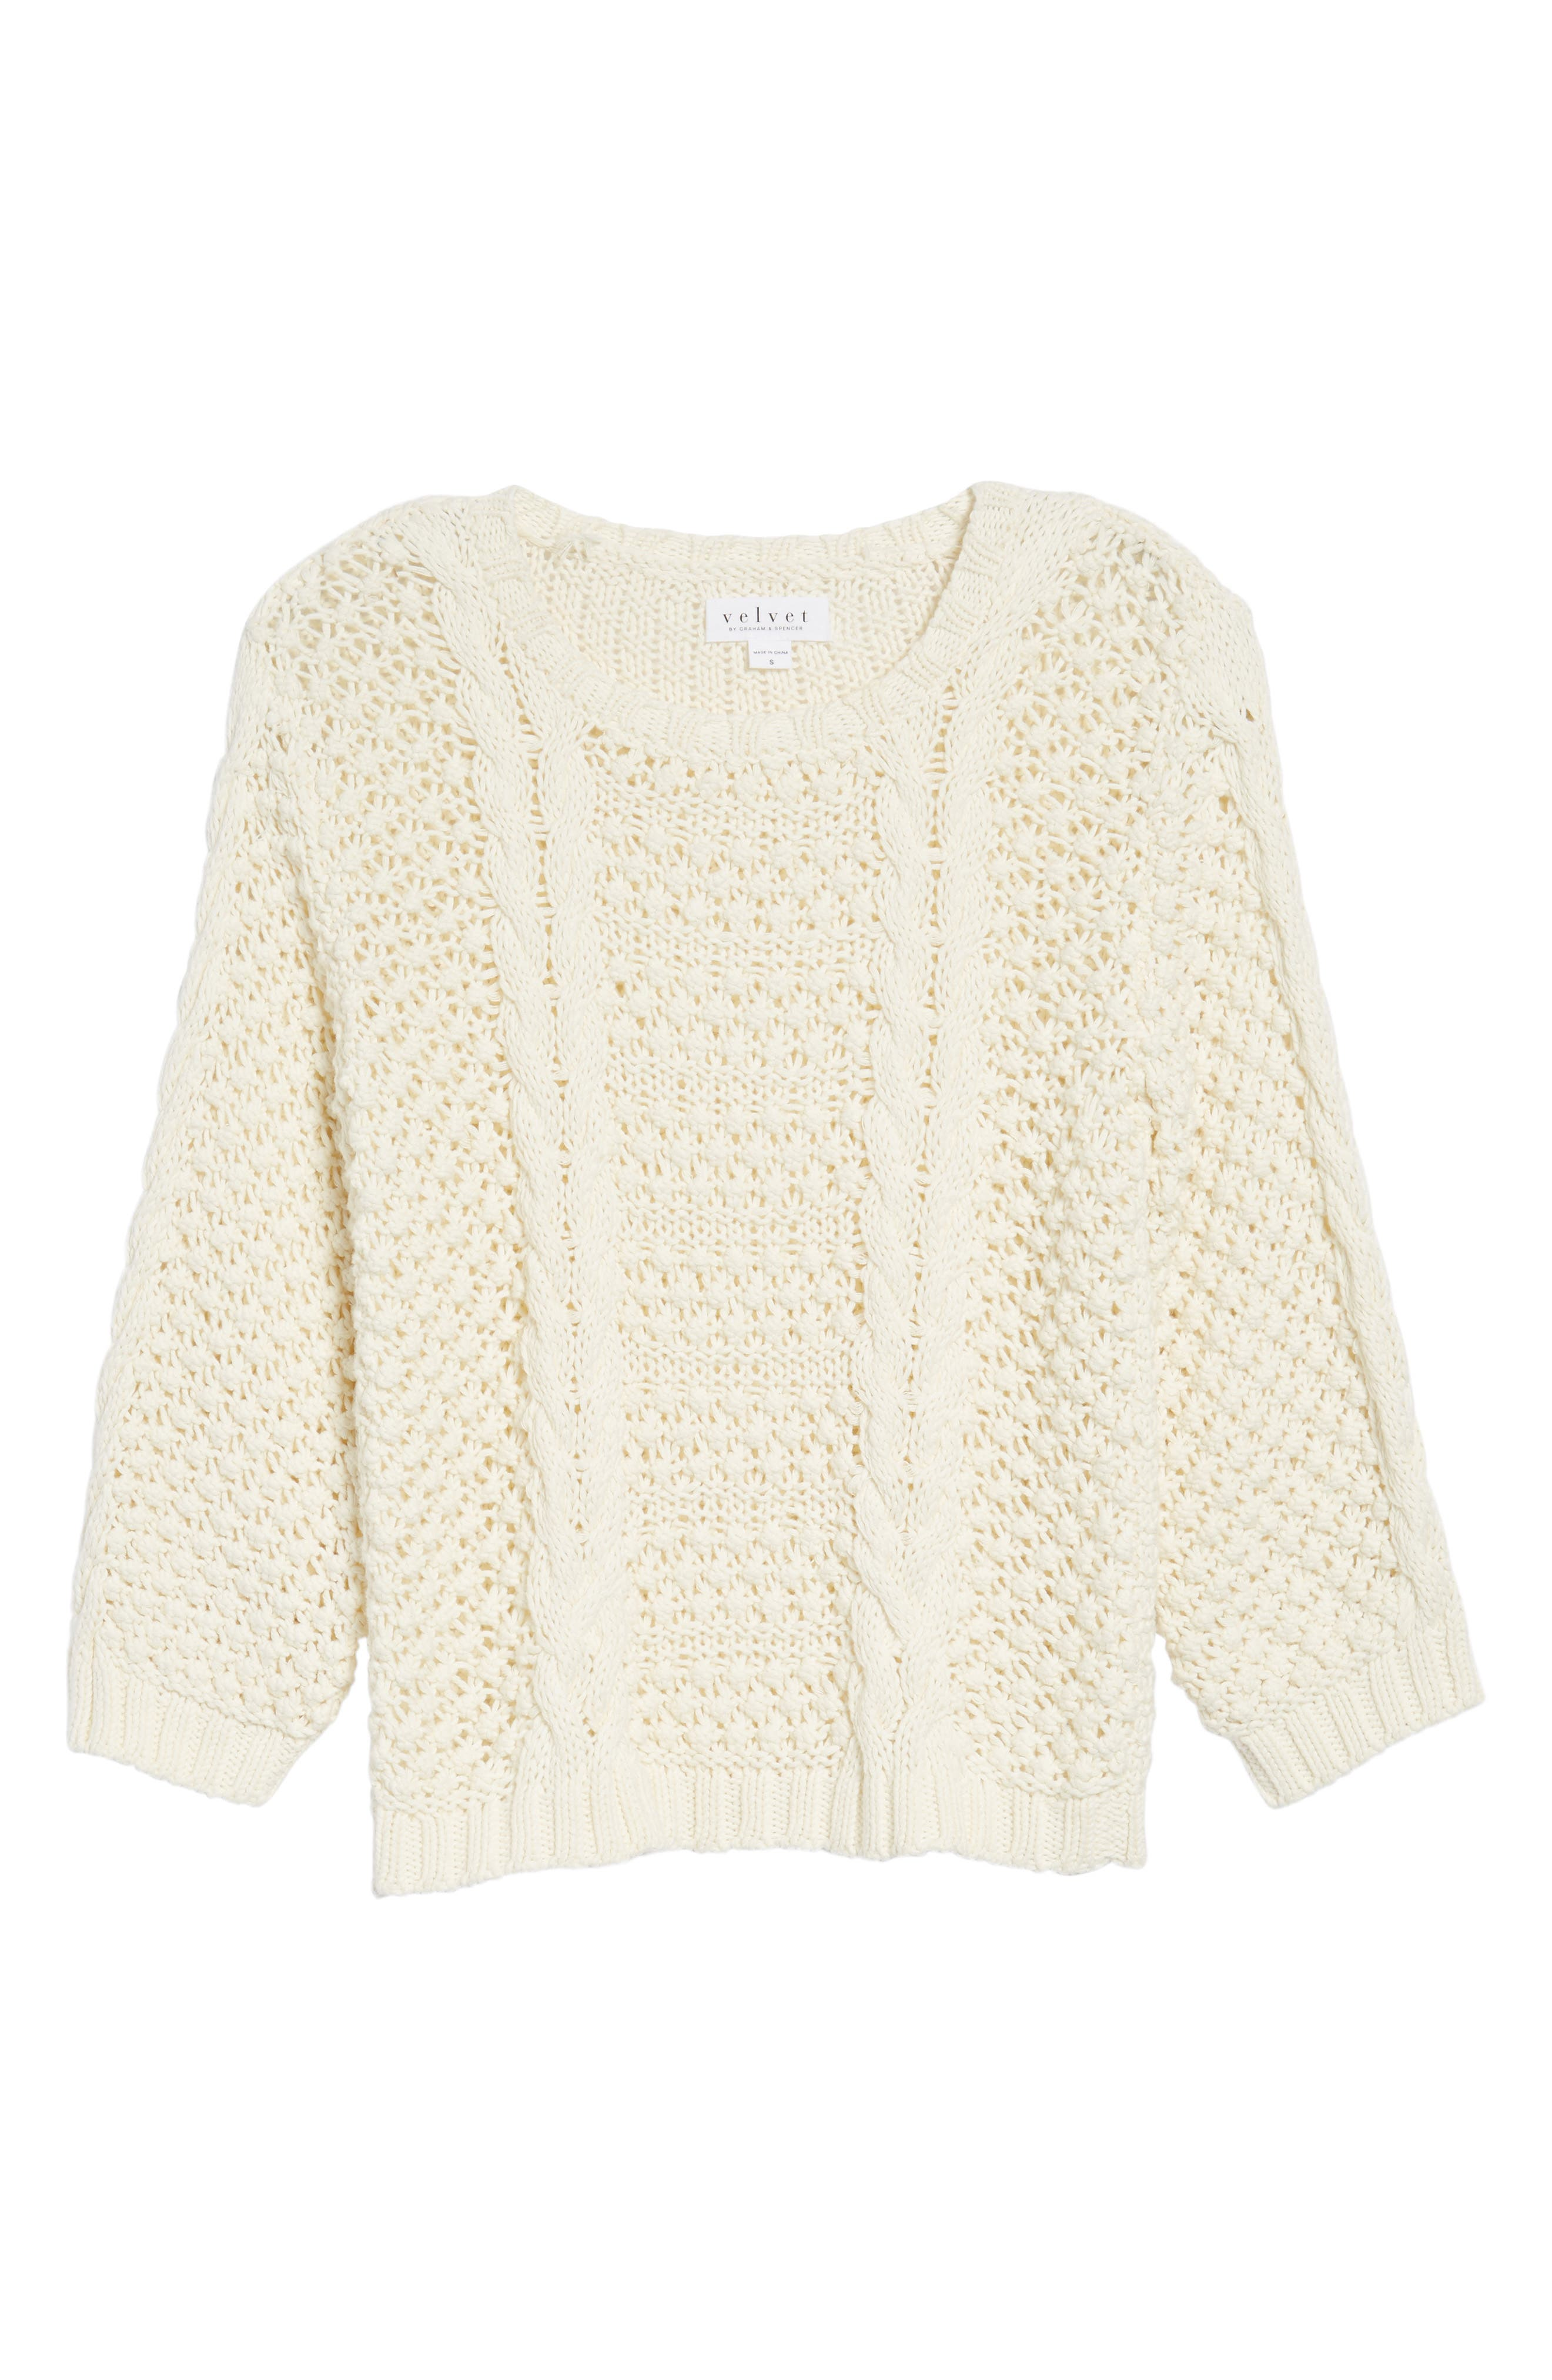 Popcorn Cable Sweater,                             Alternate thumbnail 6, color,                             905